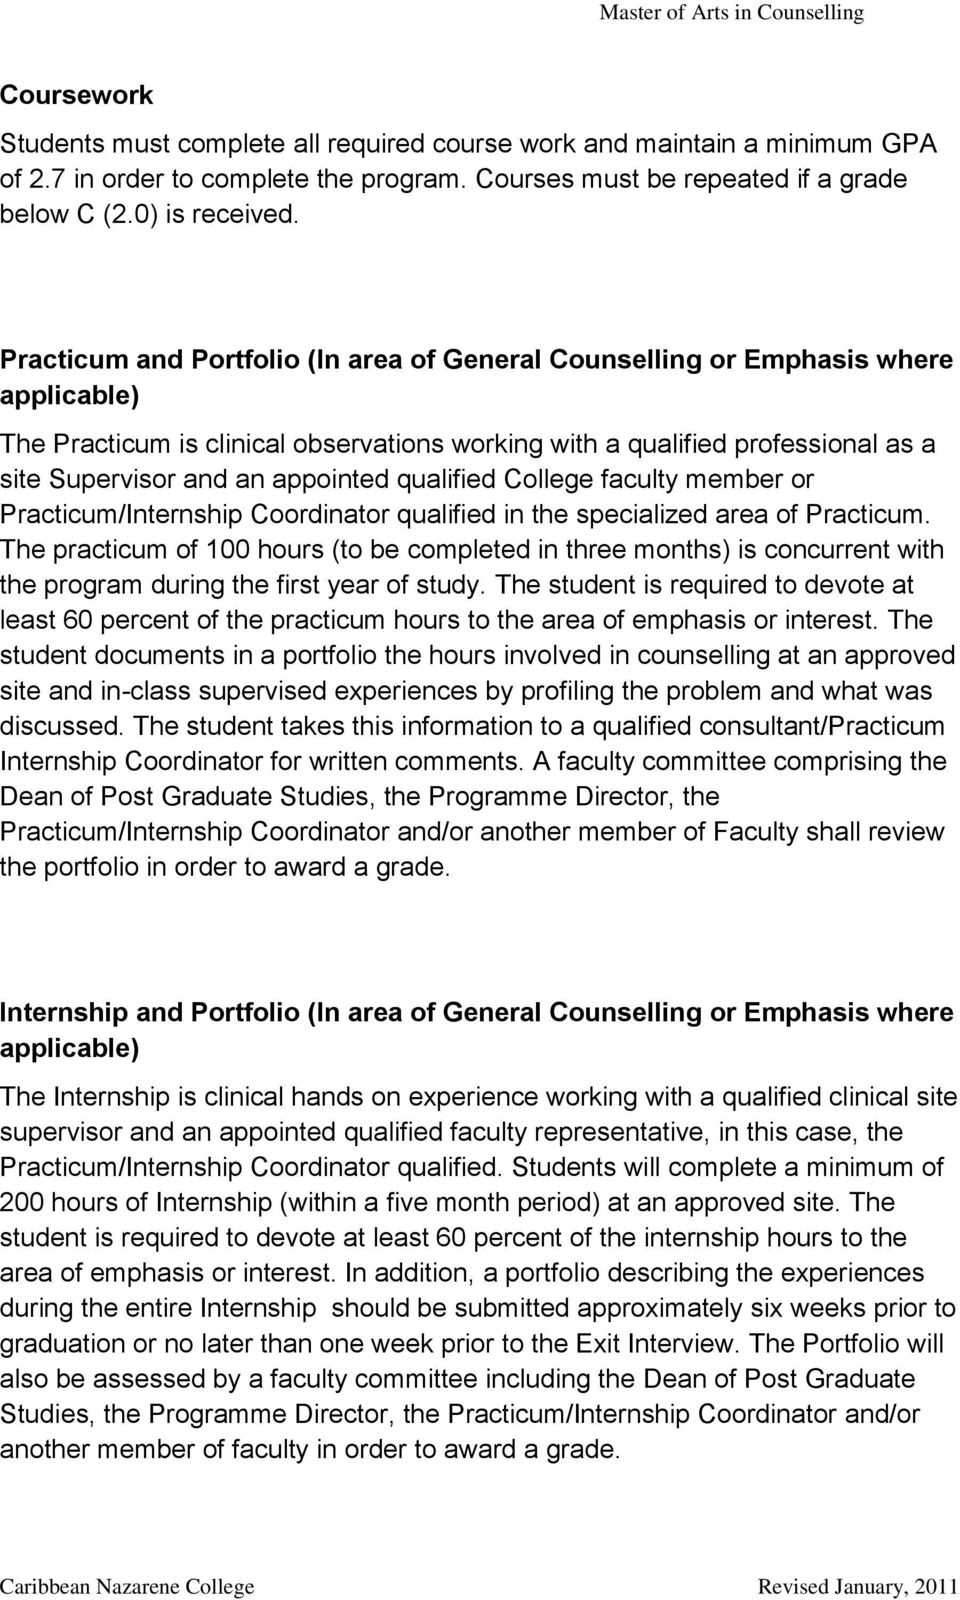 Practicum and Portfolio (In area of General Counselling or Emphasis where applicable) The Practicum is clinical observations working with a qualified professional as a site Supervisor and an